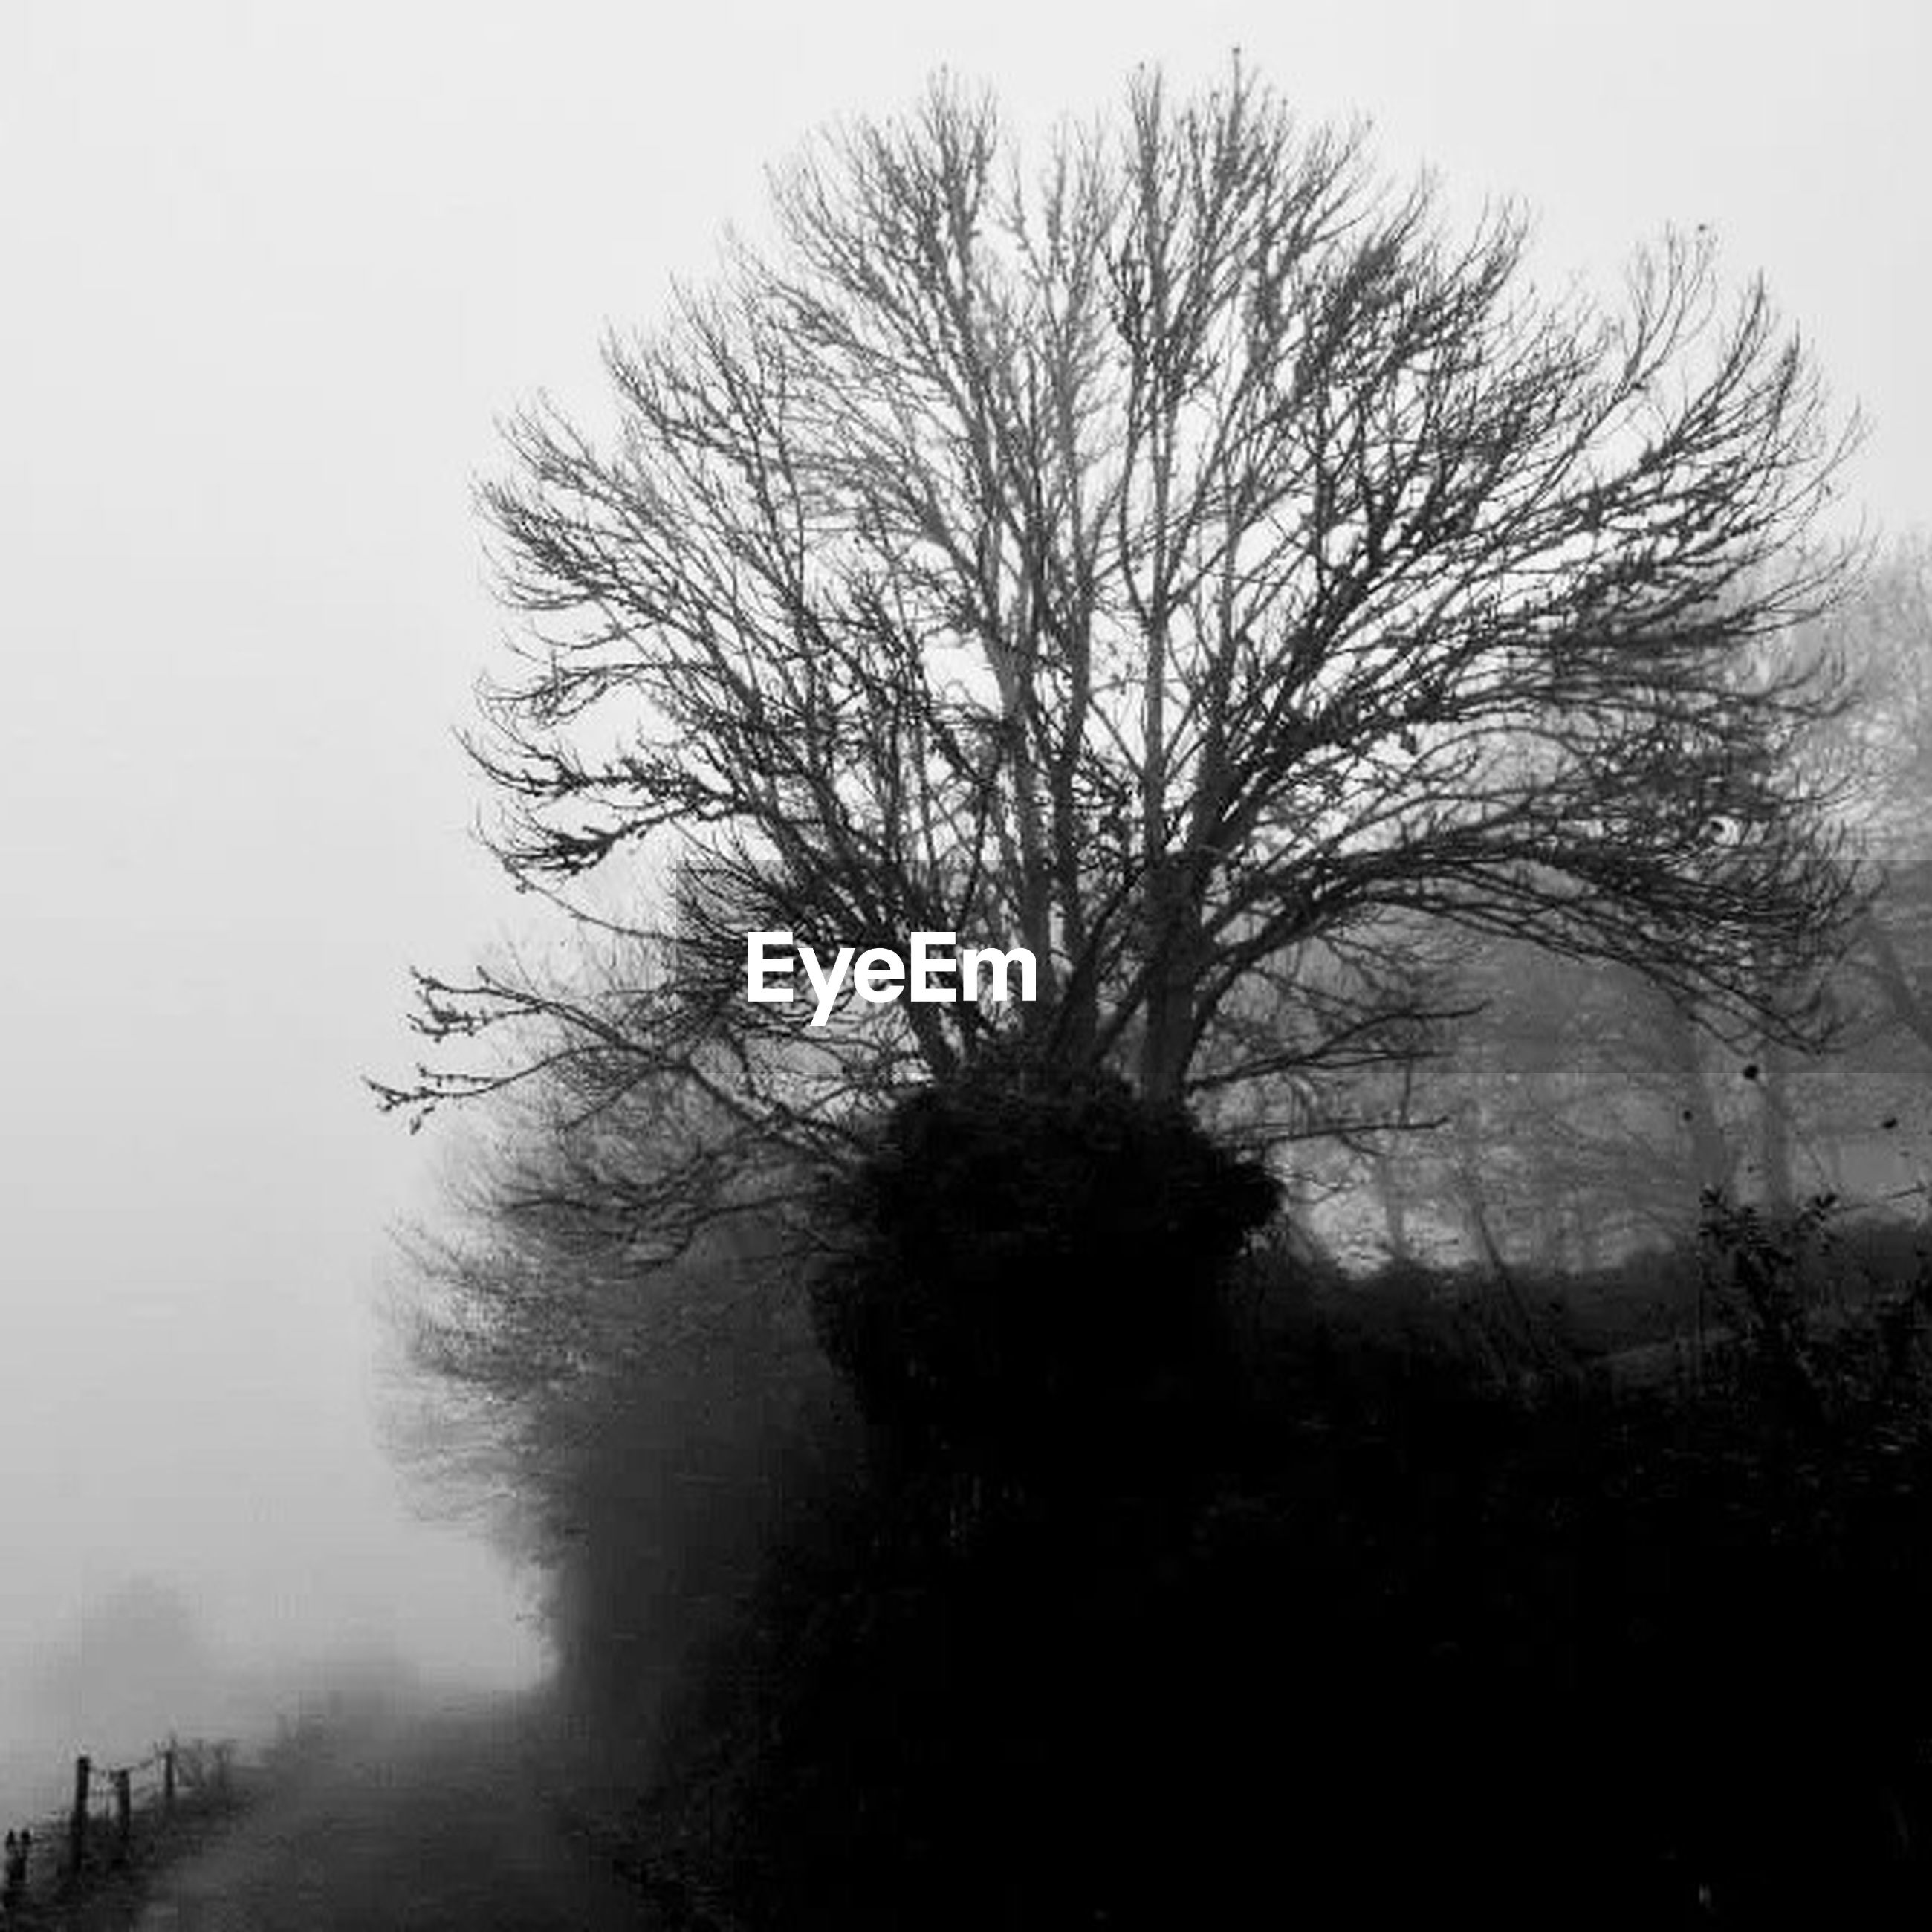 tree, bare tree, fog, foggy, tranquility, branch, nature, silhouette, tranquil scene, weather, growth, beauty in nature, tree trunk, scenics, field, outdoors, sky, landscape, day